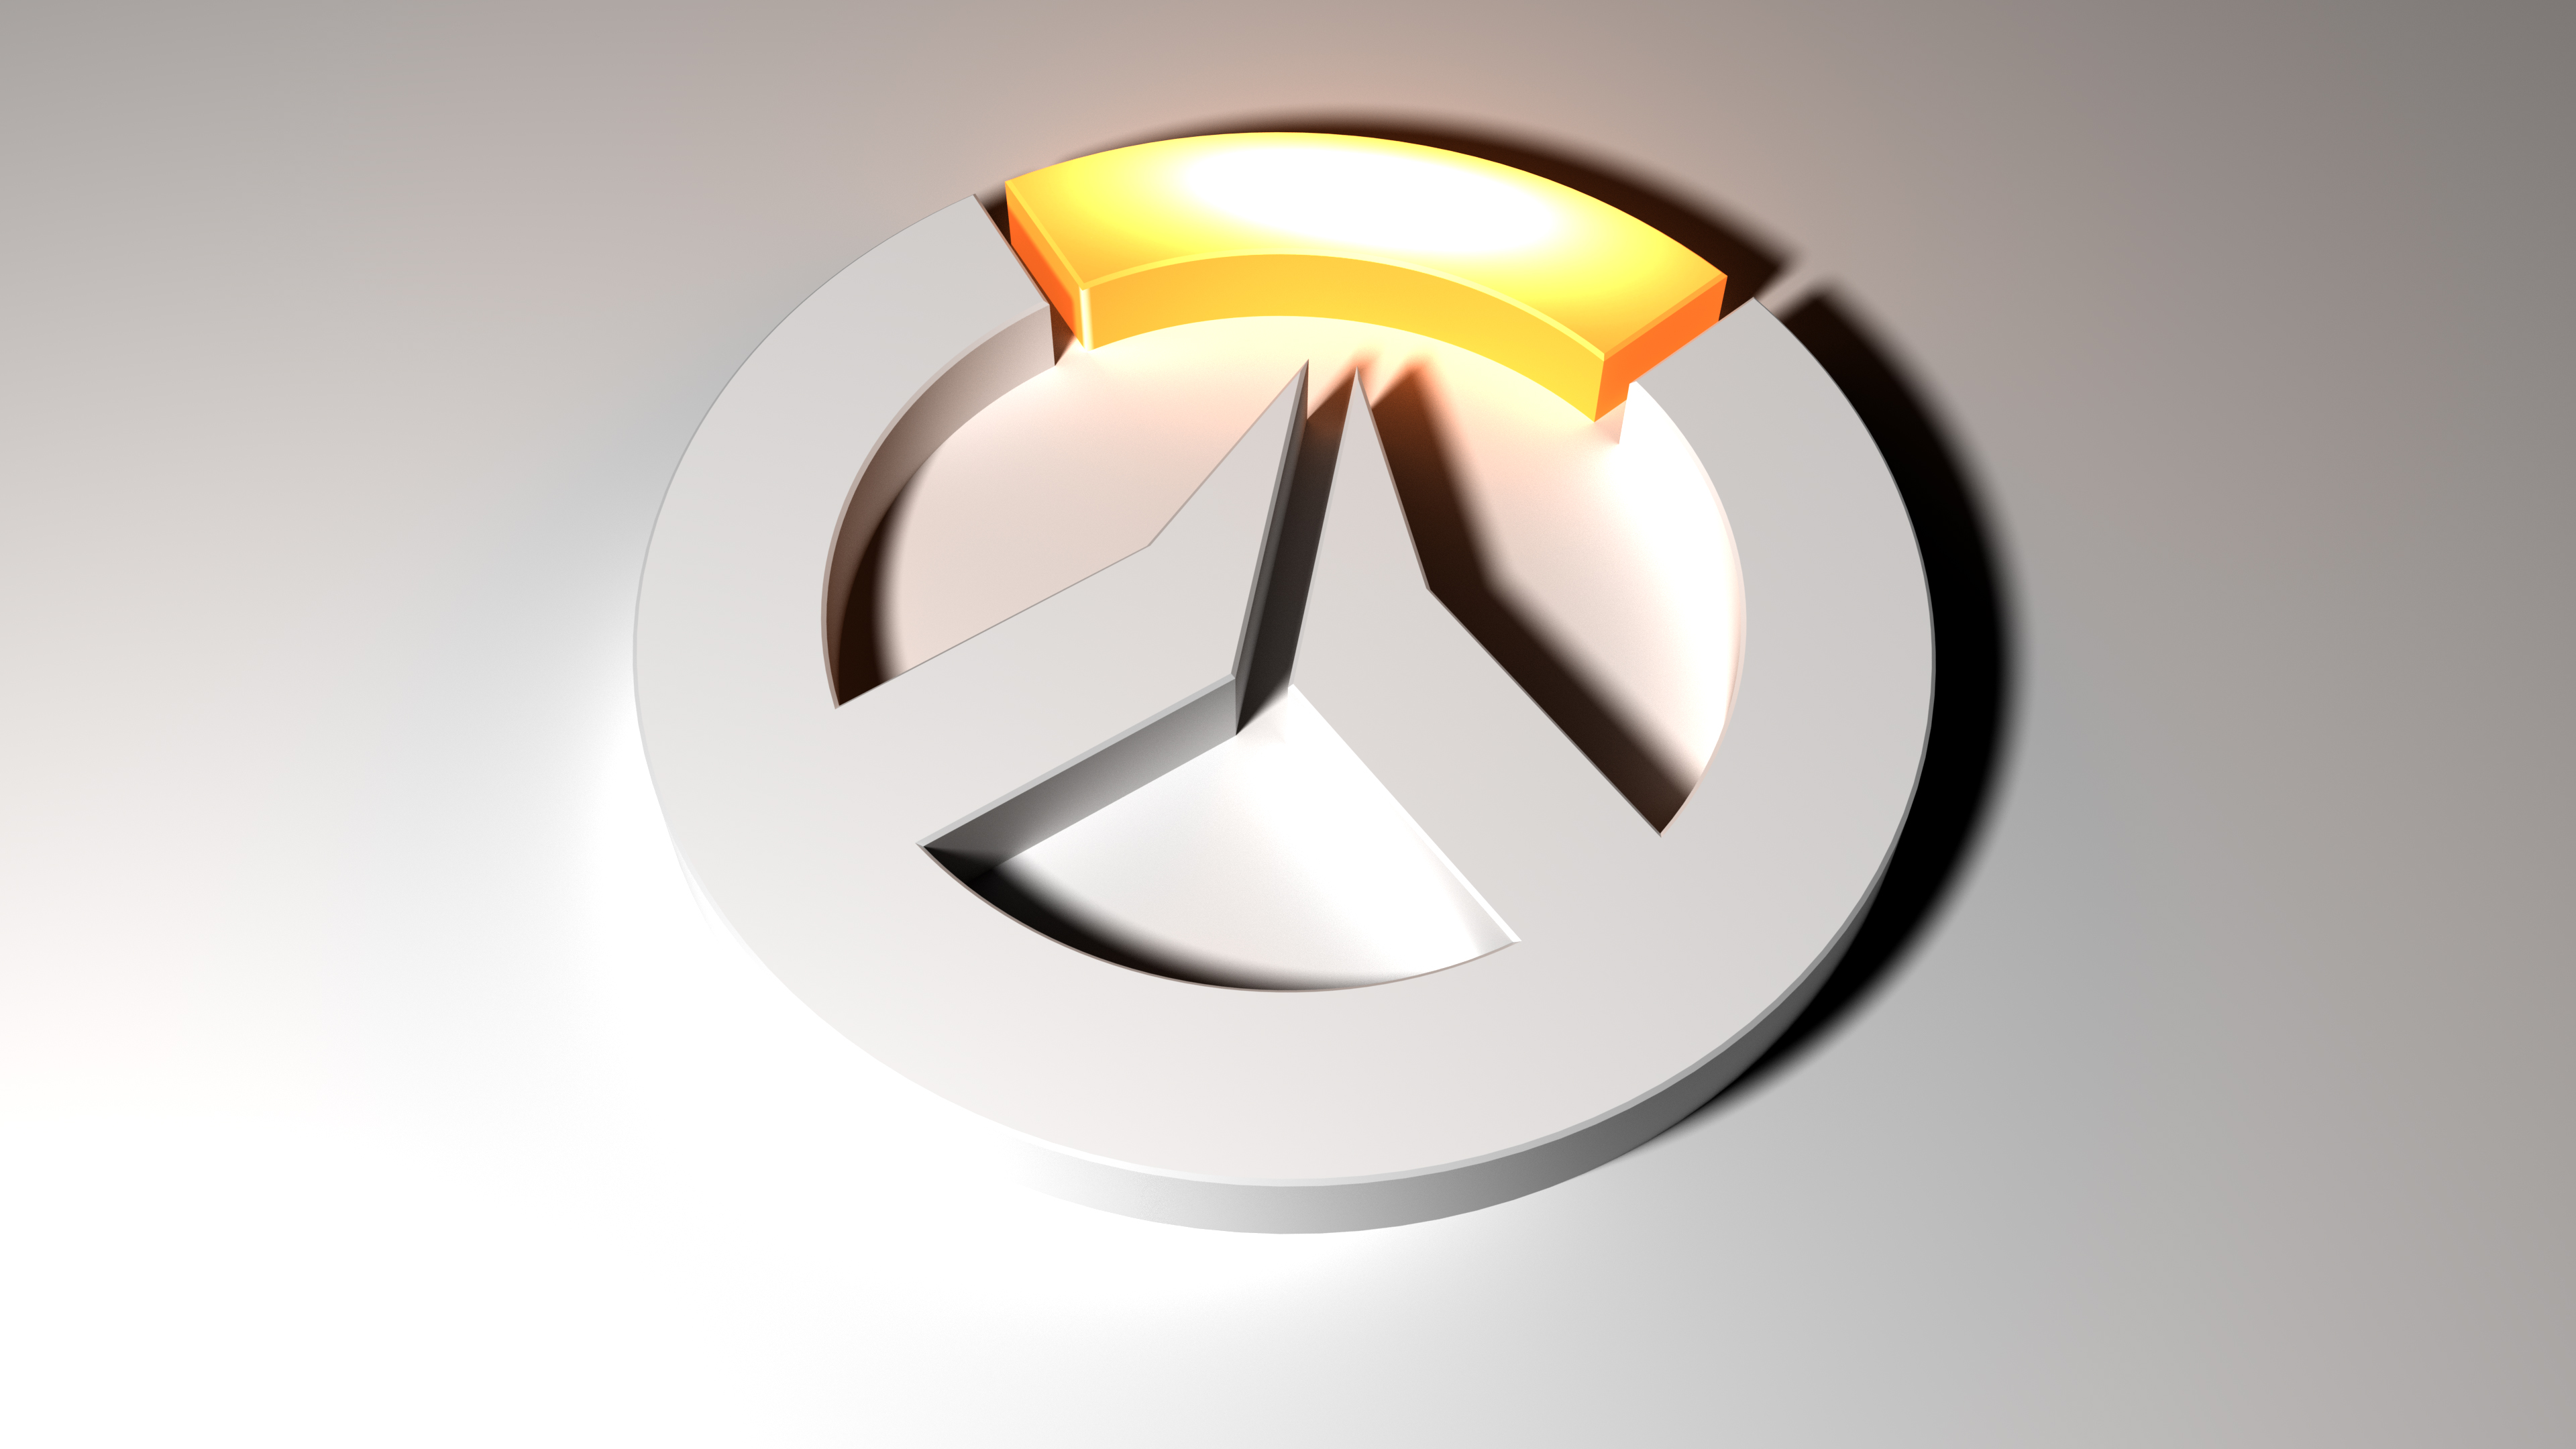 Overwatch Logo Hd Games 4k Wallpapers Images Backgrounds